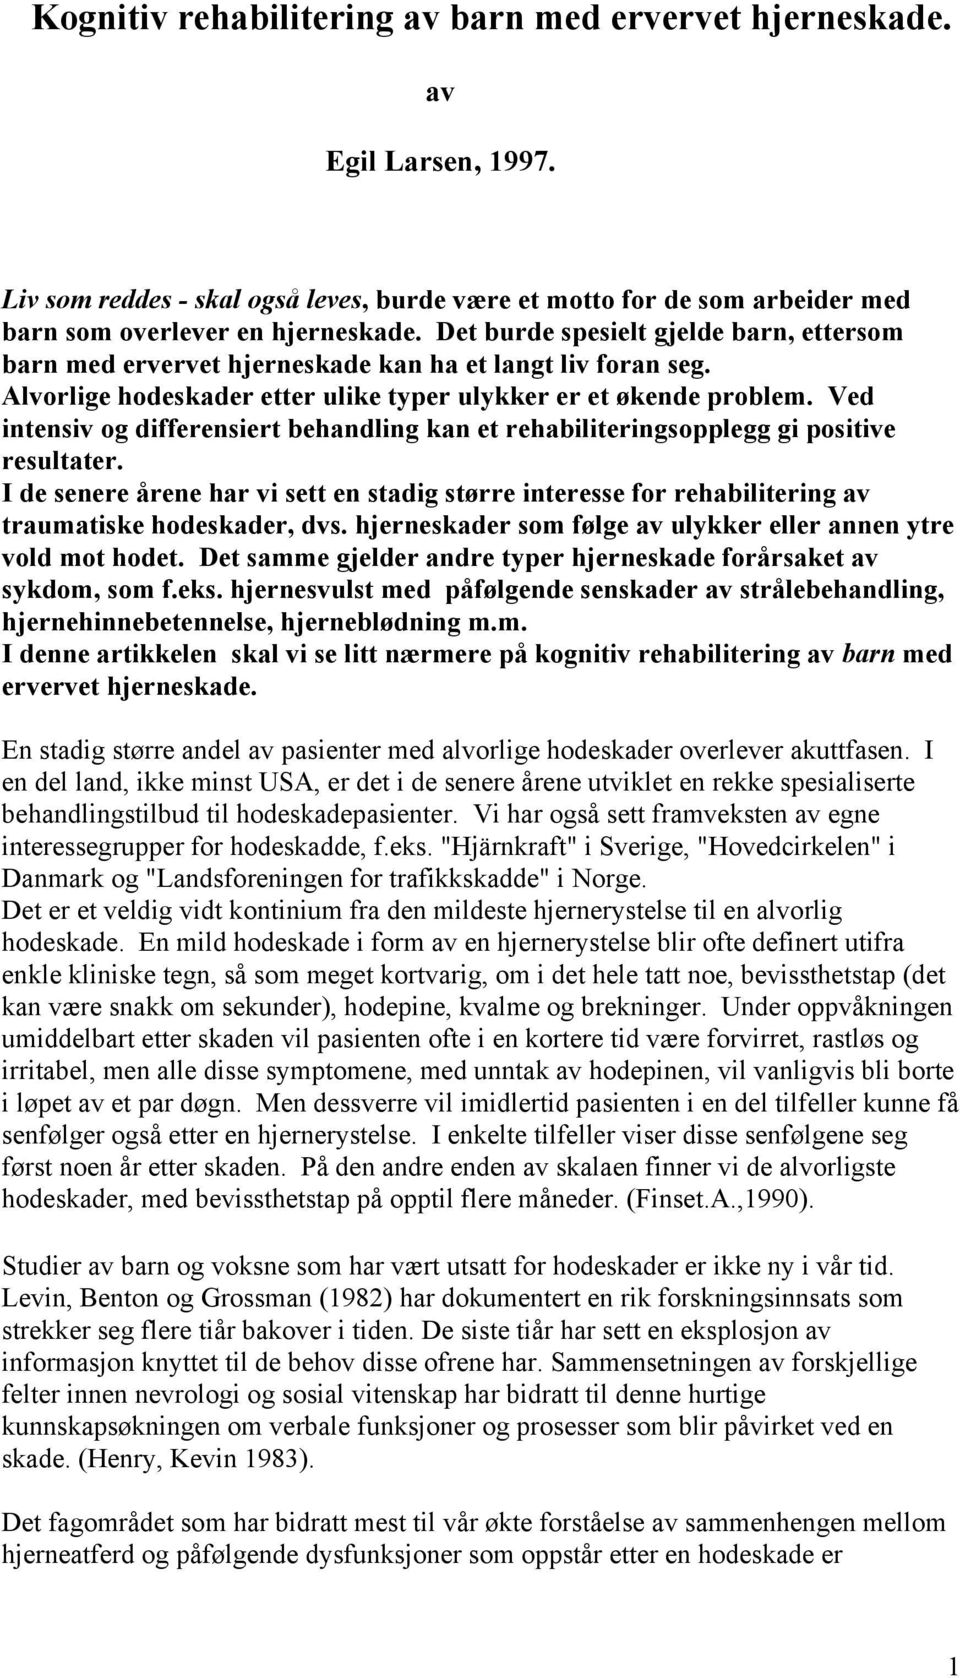 Ved intensiv og differensiert behandling kan et rehabiliteringsopplegg gi positive resultater.